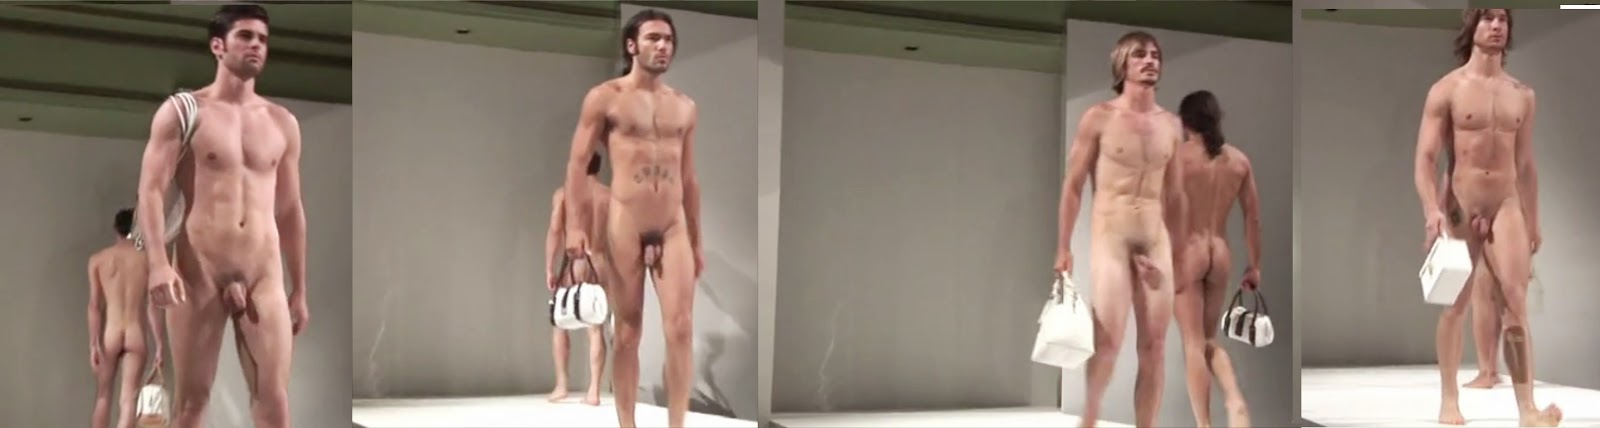 nude models on stage